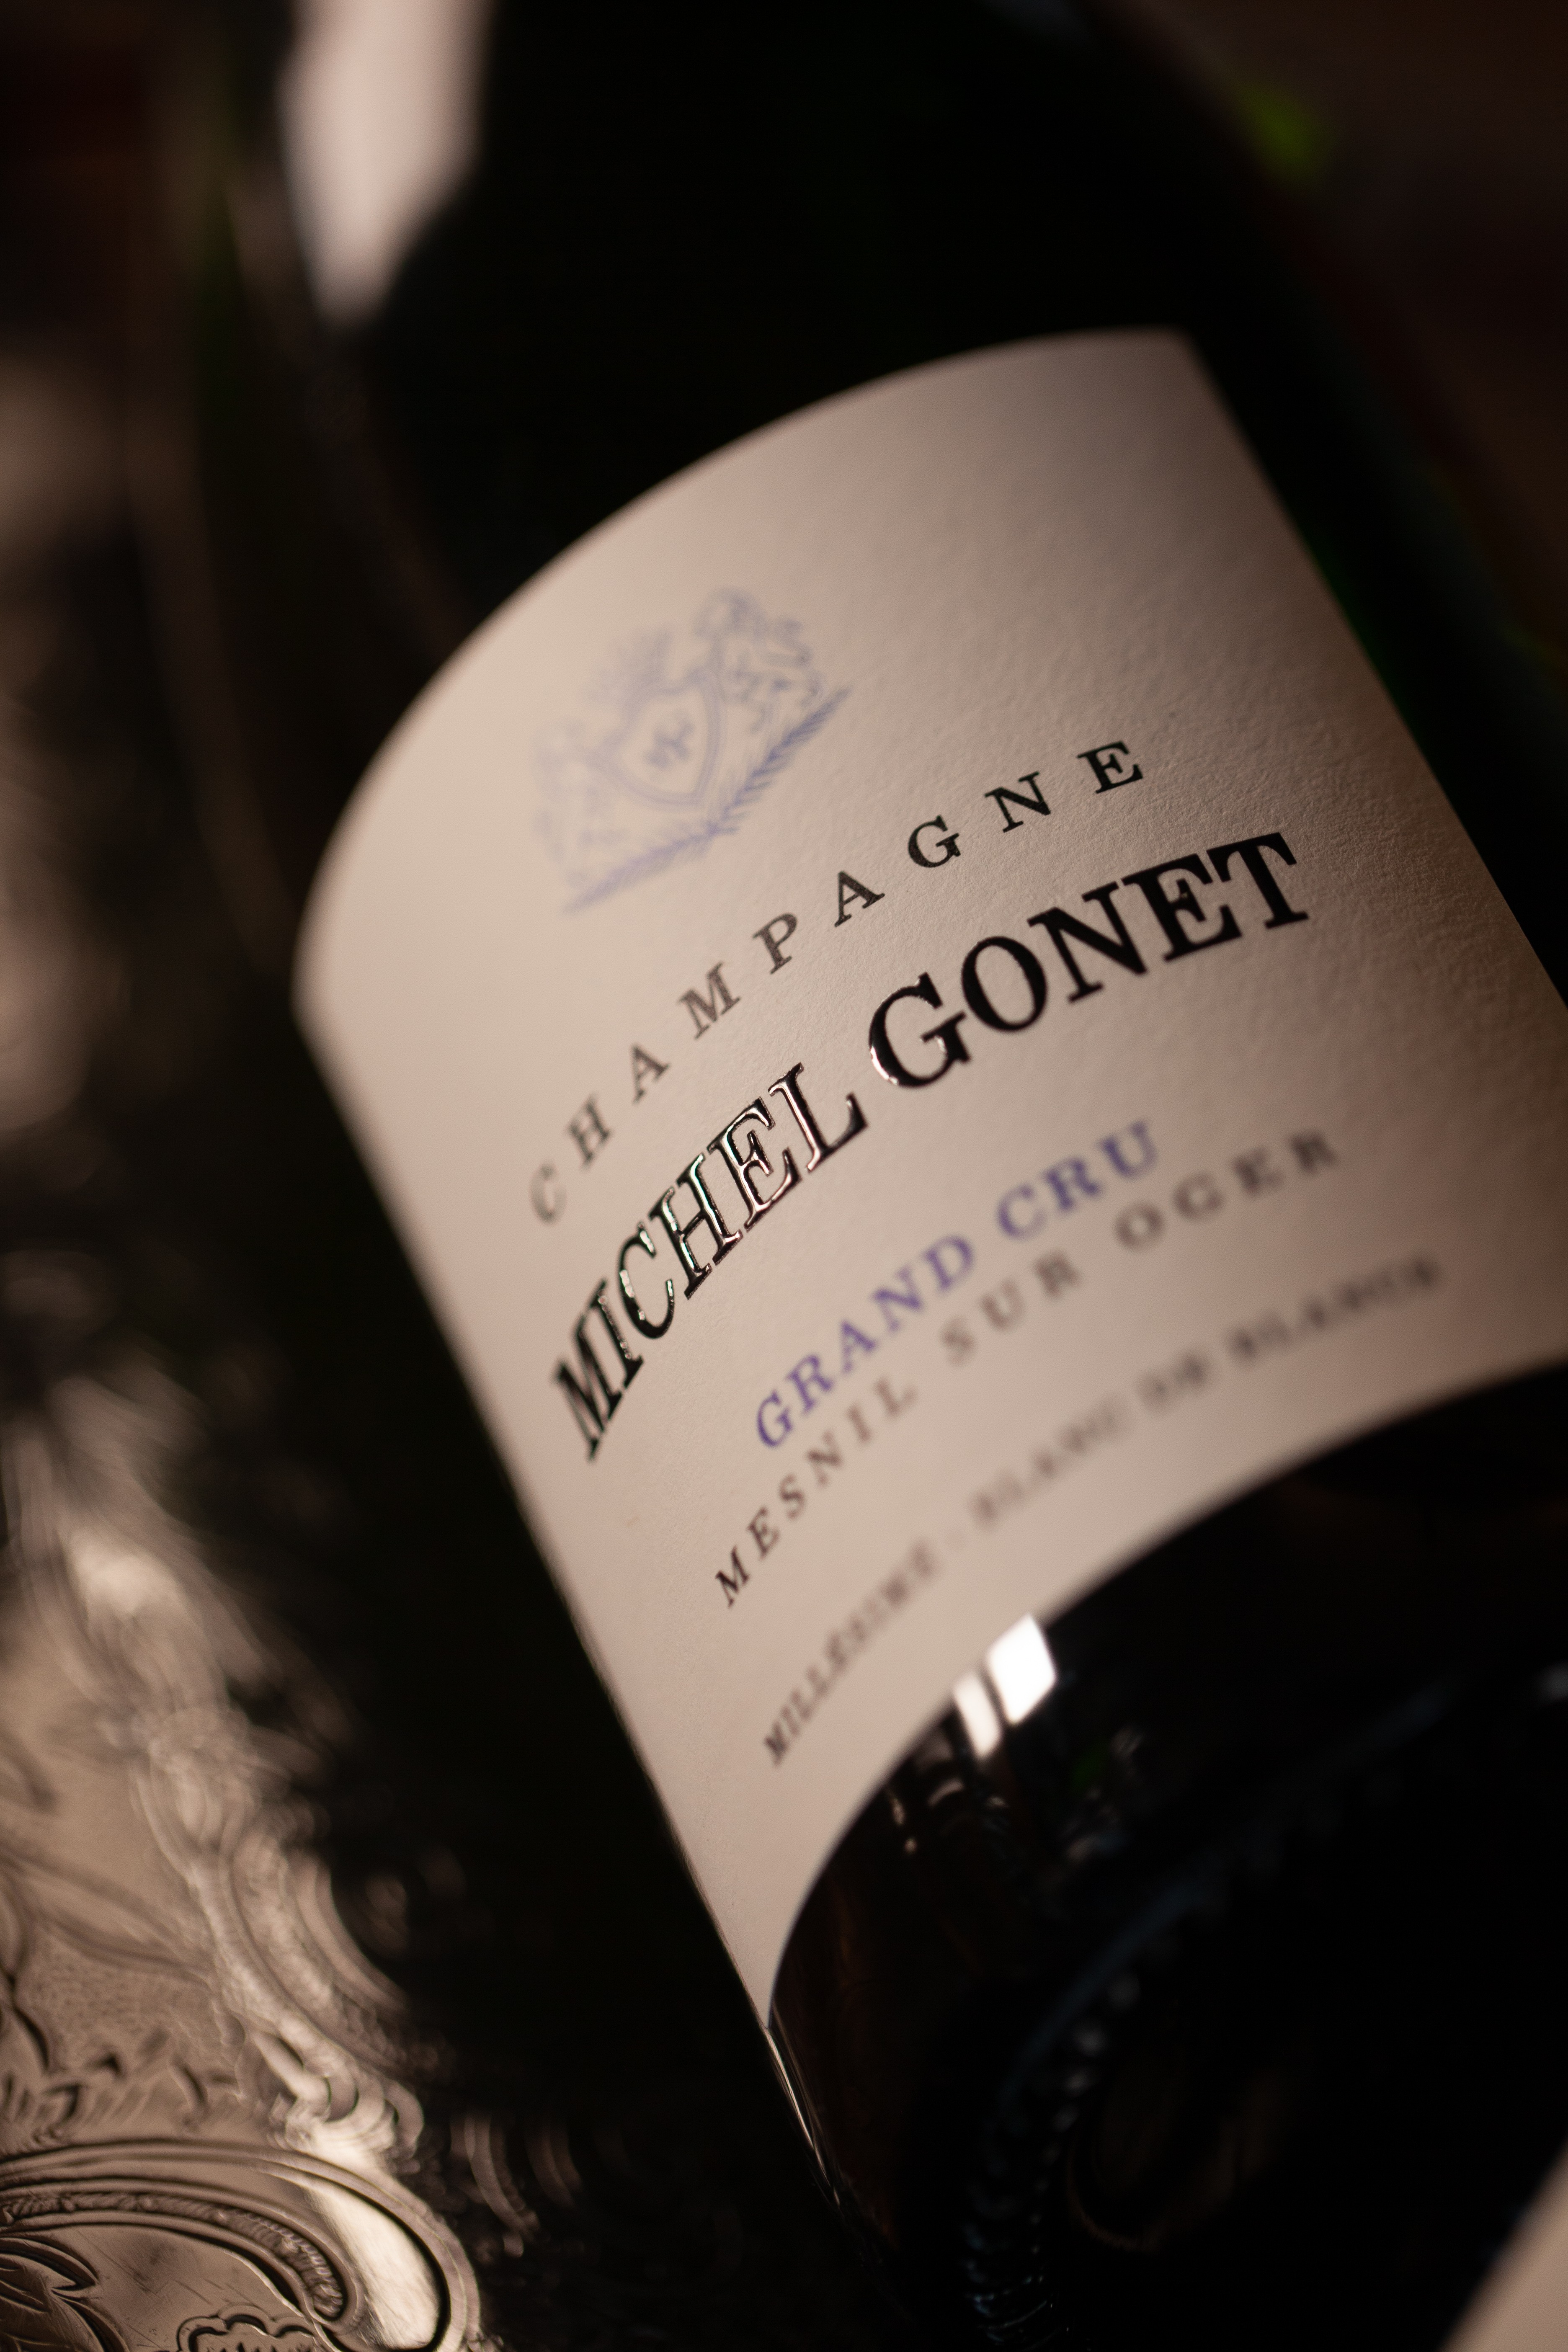 image-prop-contact-champagne-michel-gonet